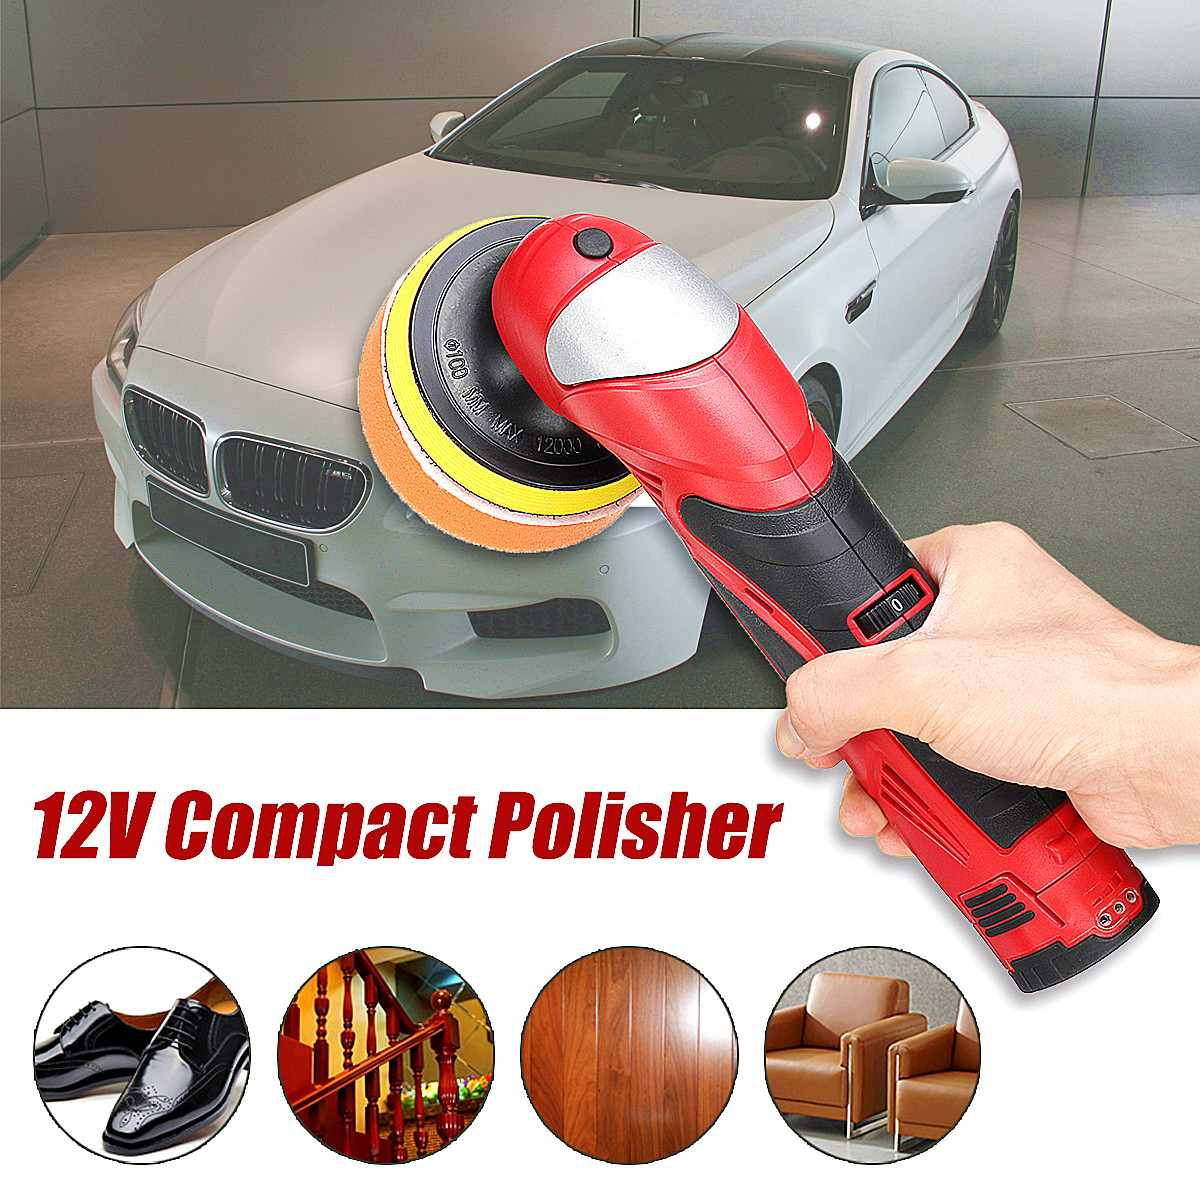 Car Polisher 12V 5-Level Variable Speed 3000rpm Car Paint Care Tool Polishing Machine Sander Electric Floor Polisher Compact PolCar Polisher 12V 5-Level Variable Speed 3000rpm Car Paint Care Tool Polishing Machine Sander Electric Floor Polisher Compact Pol